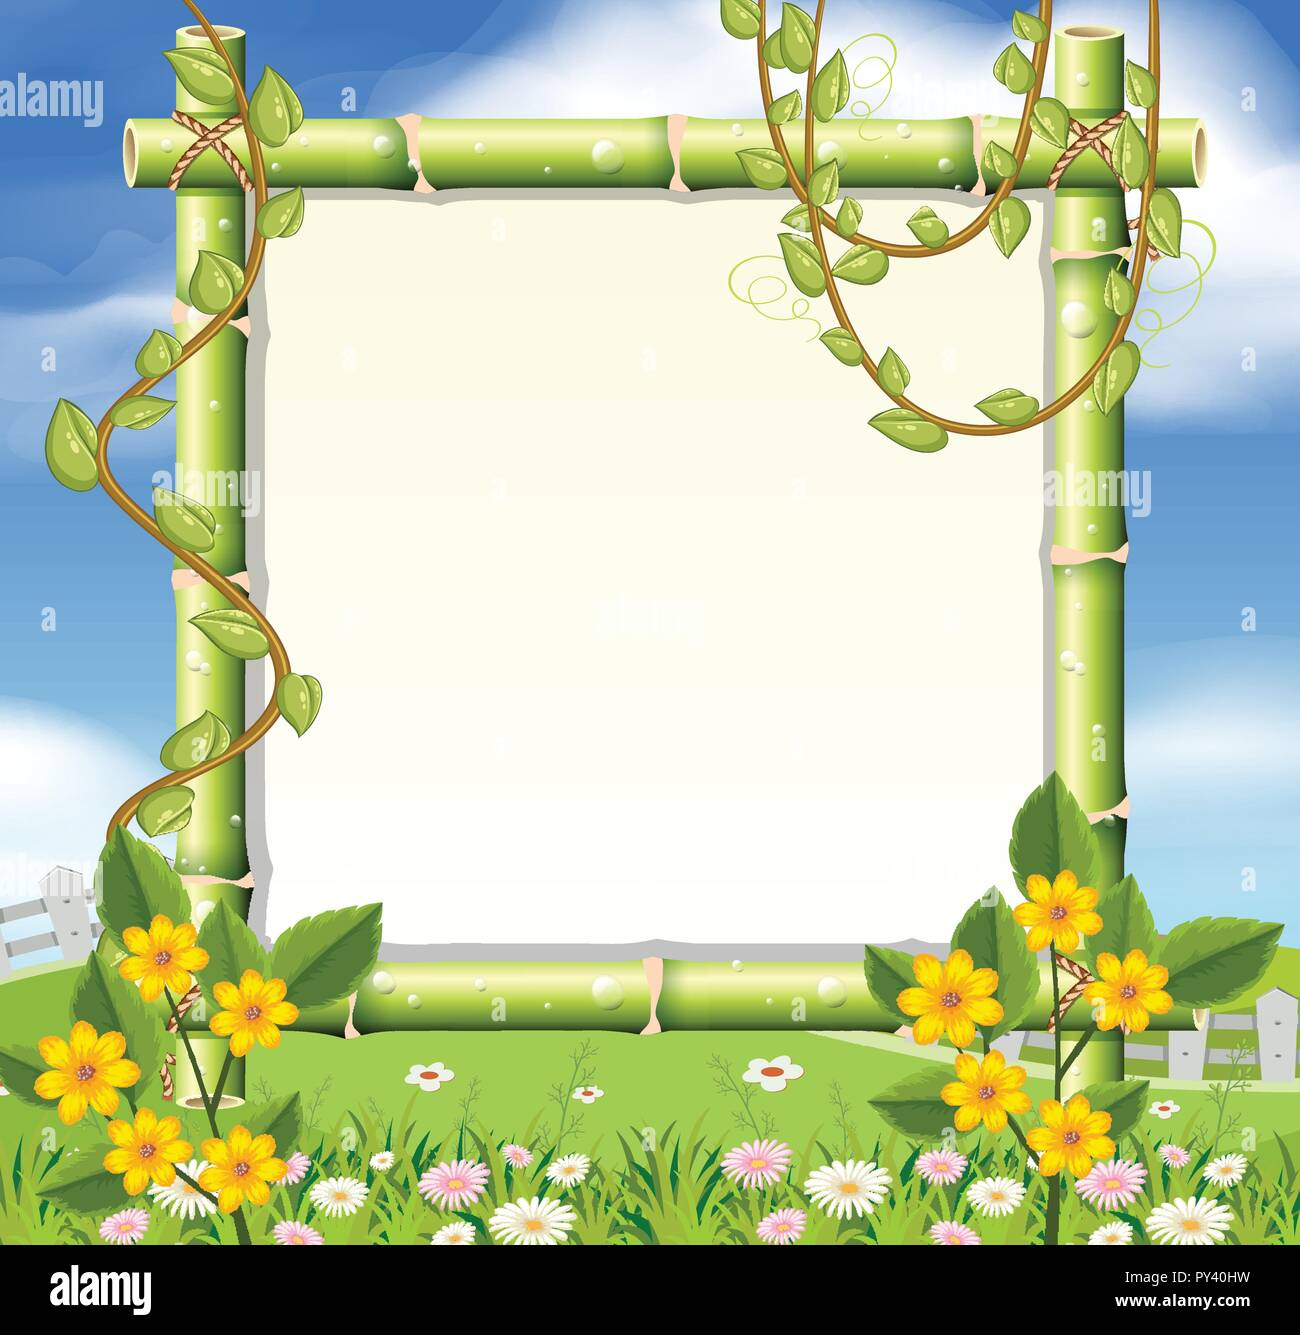 a beautiful nature frame illustration stock vector image art alamy https www alamy com a beautiful nature frame illustration image223208437 html